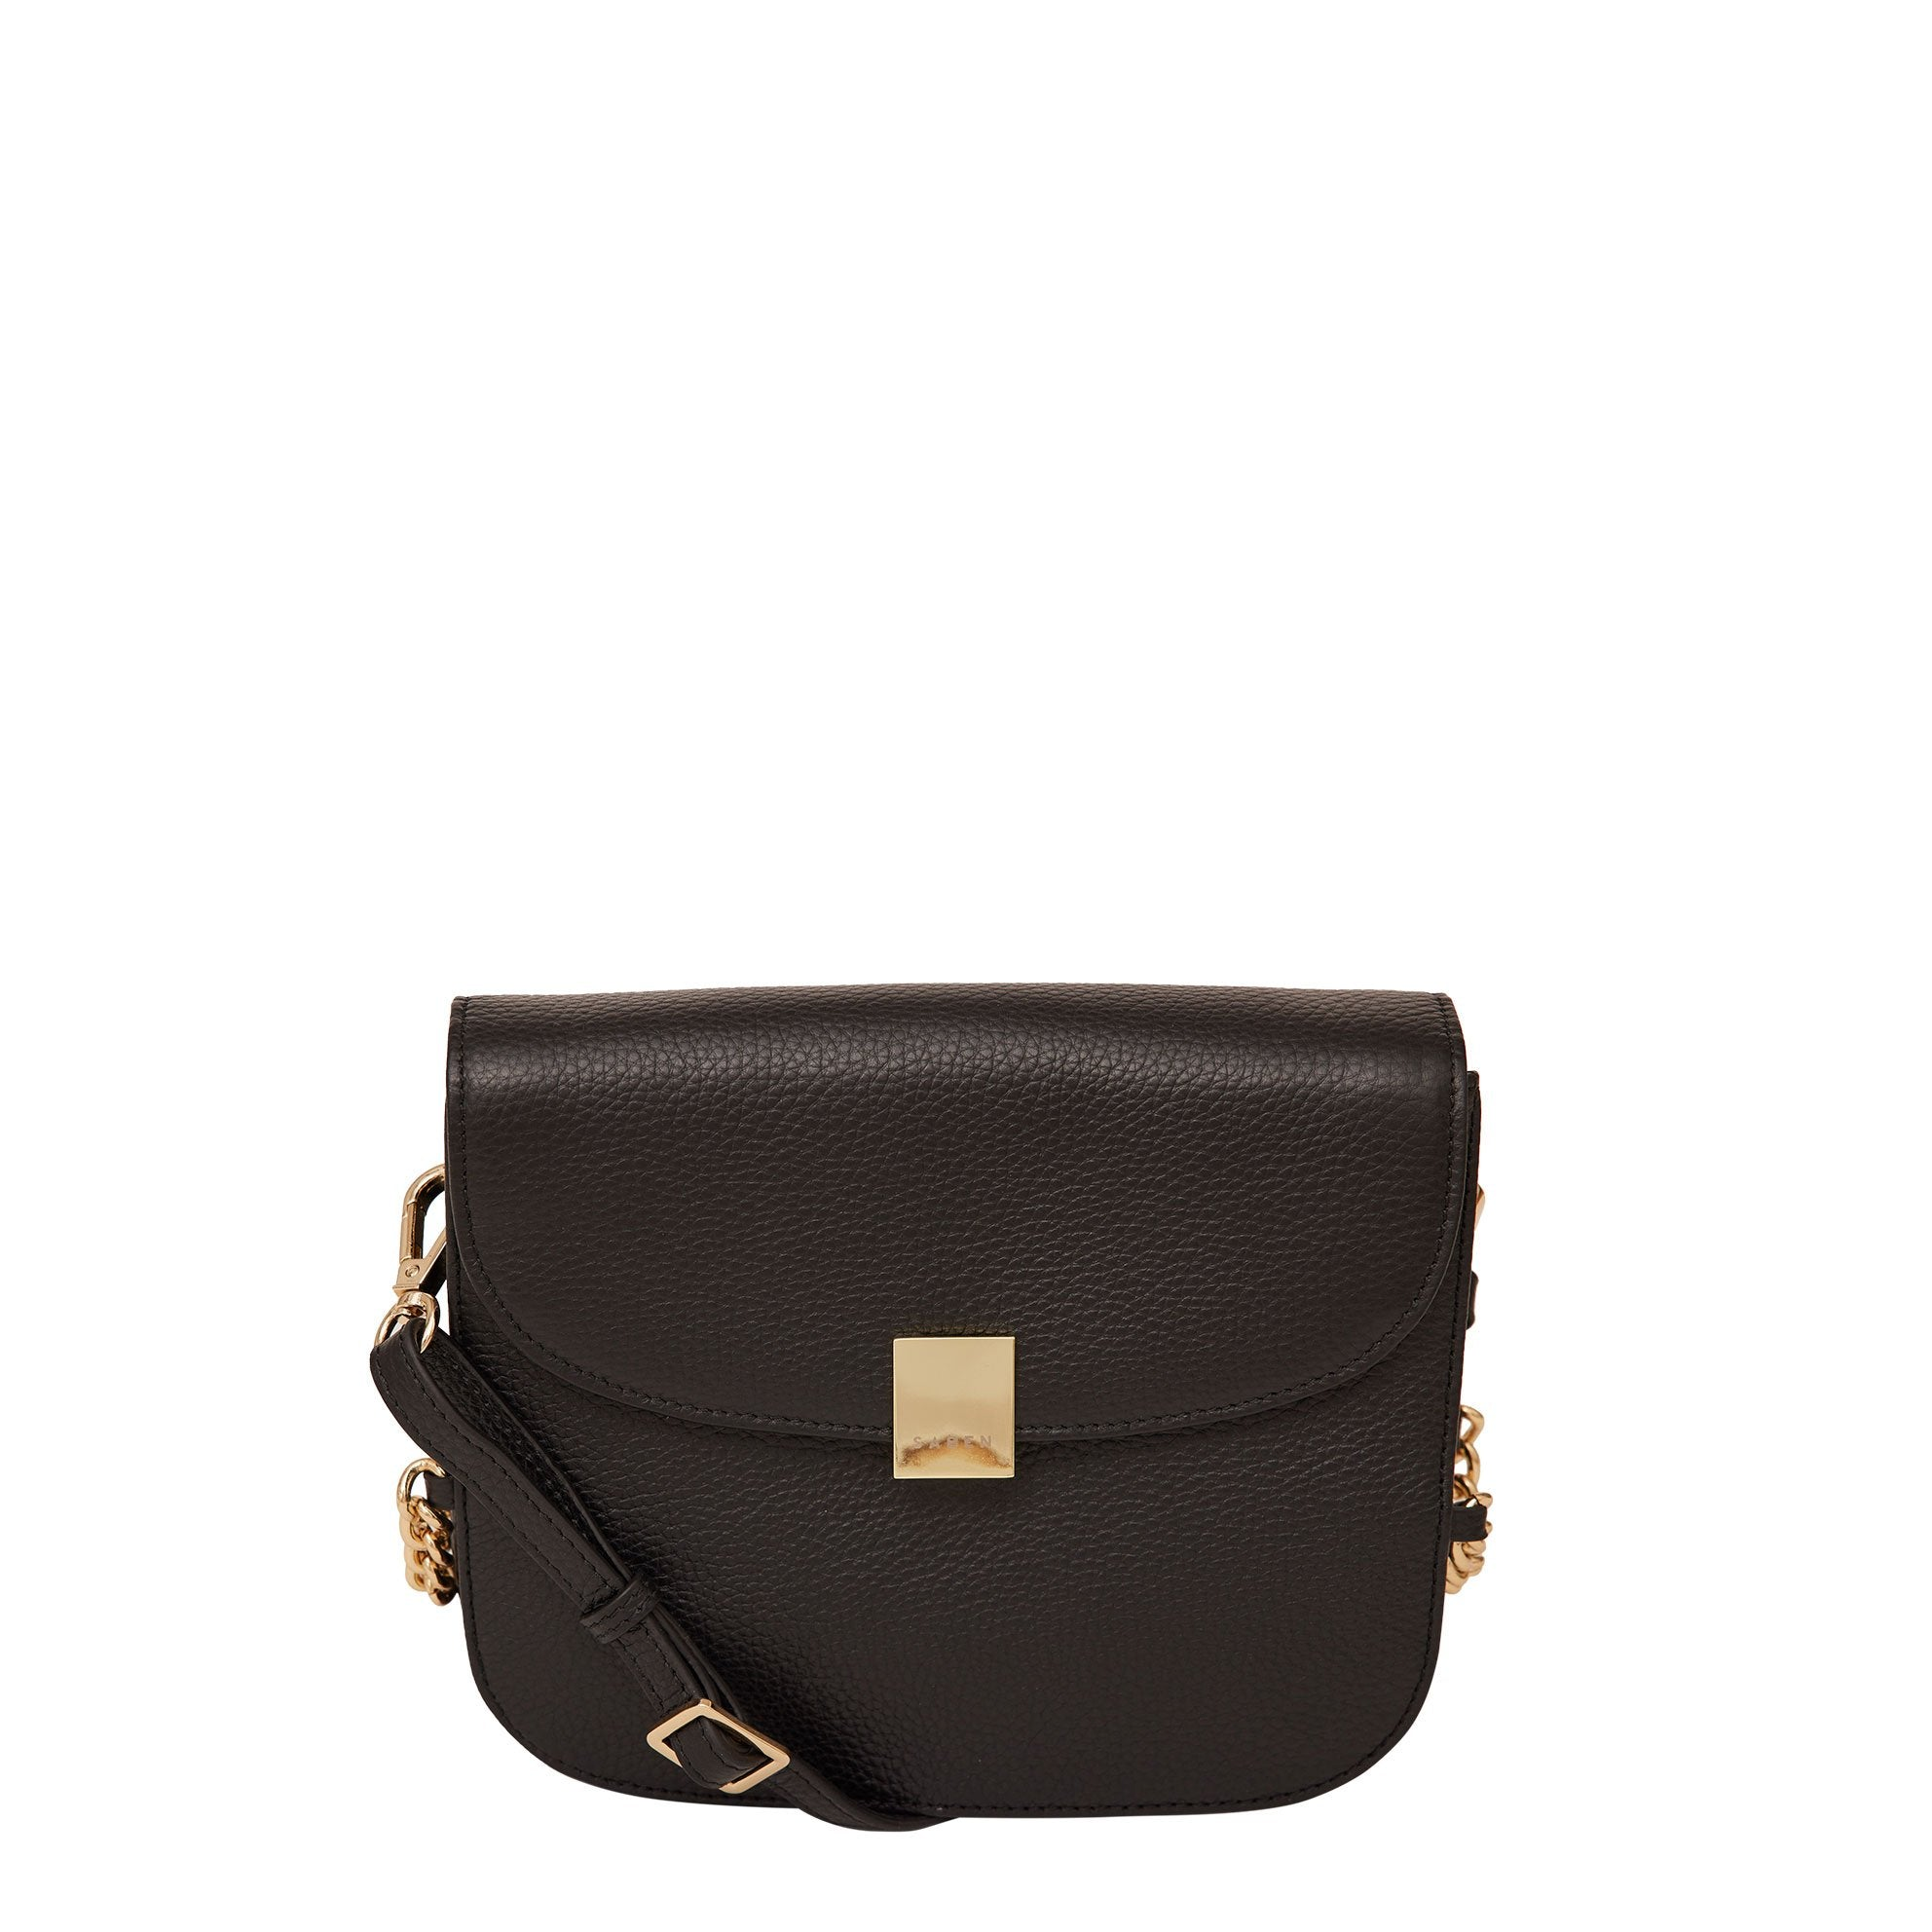 saben handbag blaise crossbody handbag designed in New Zealand and made out of 100% leather